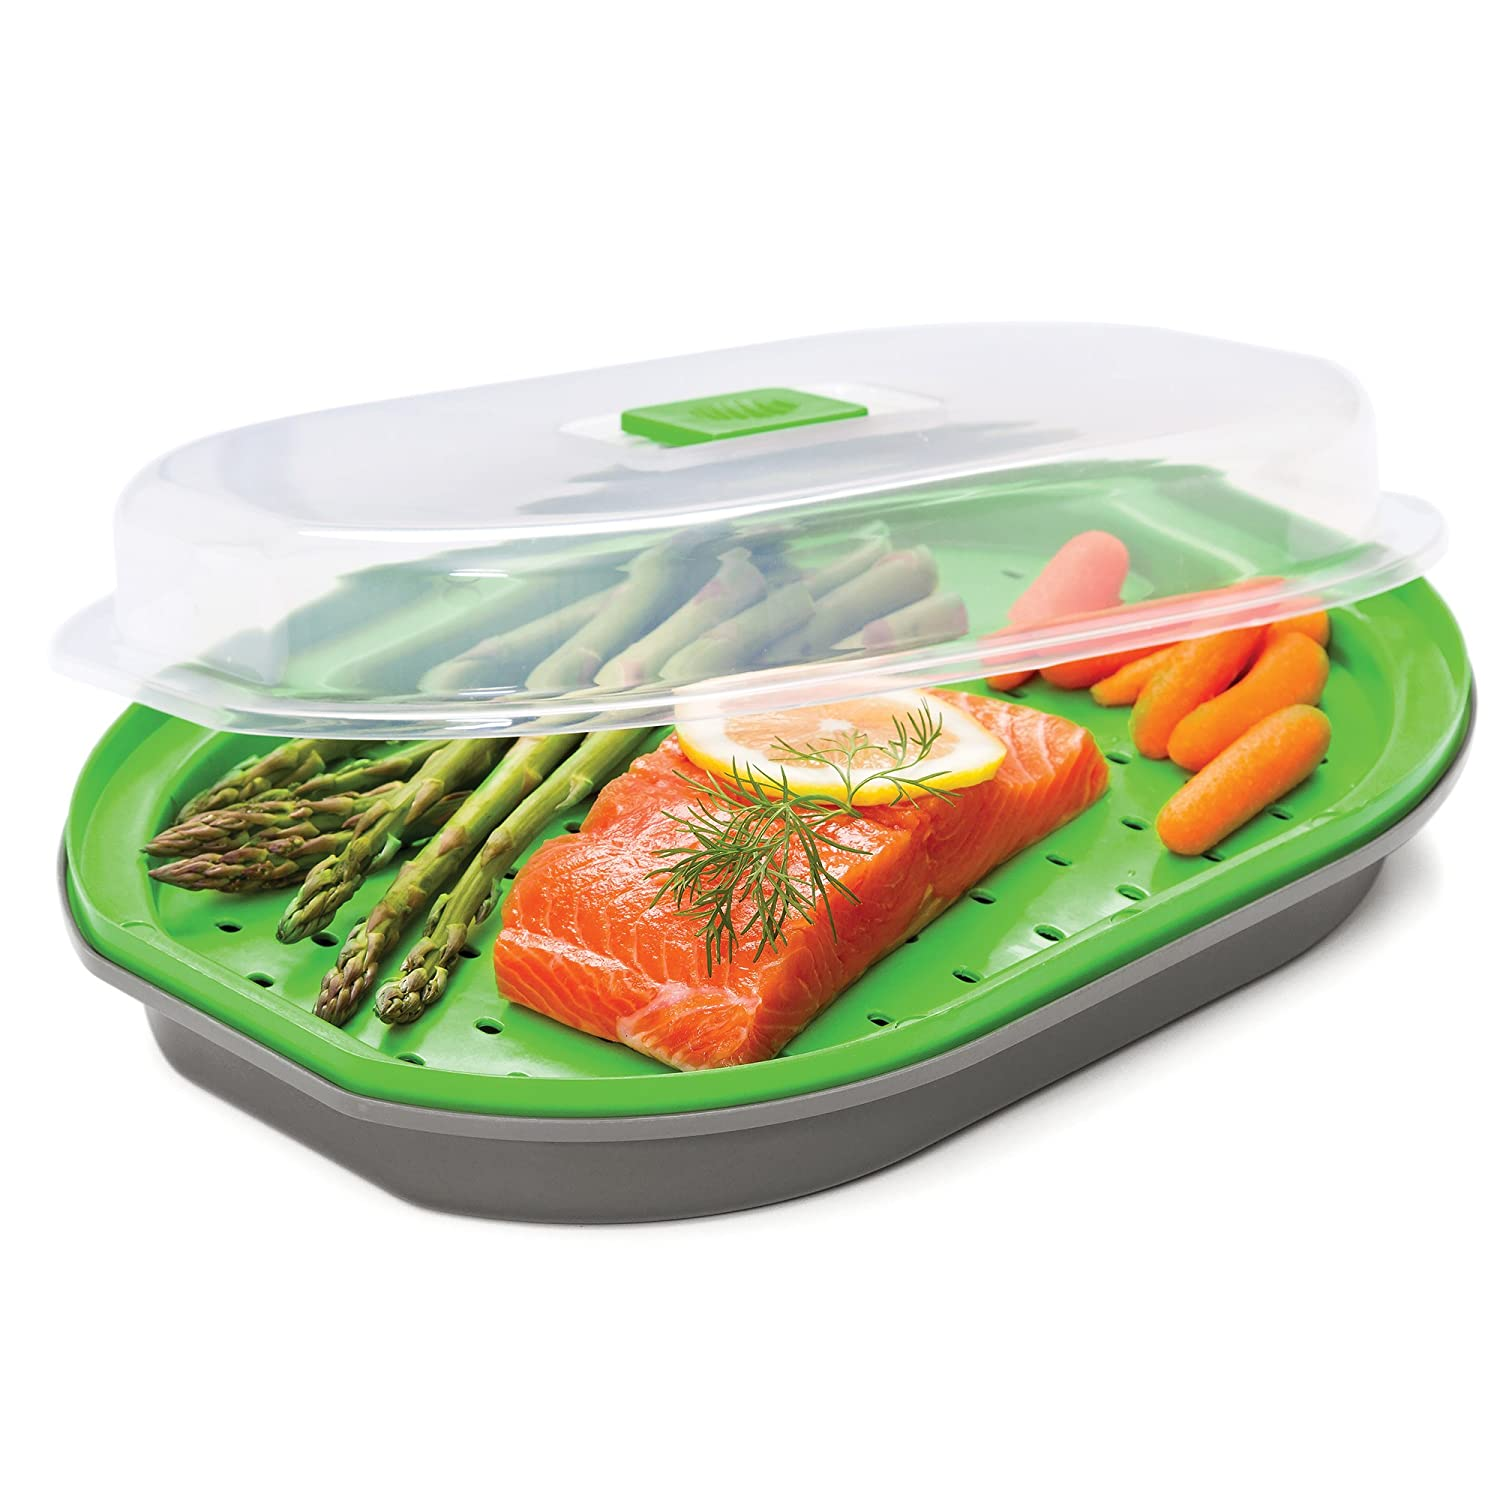 Prep Solutions Microwave Fish and Veggie Steamer, Adjustable Steam Vent Control, Vegetable Steamer, BPA FREE, Dishwasher Safe